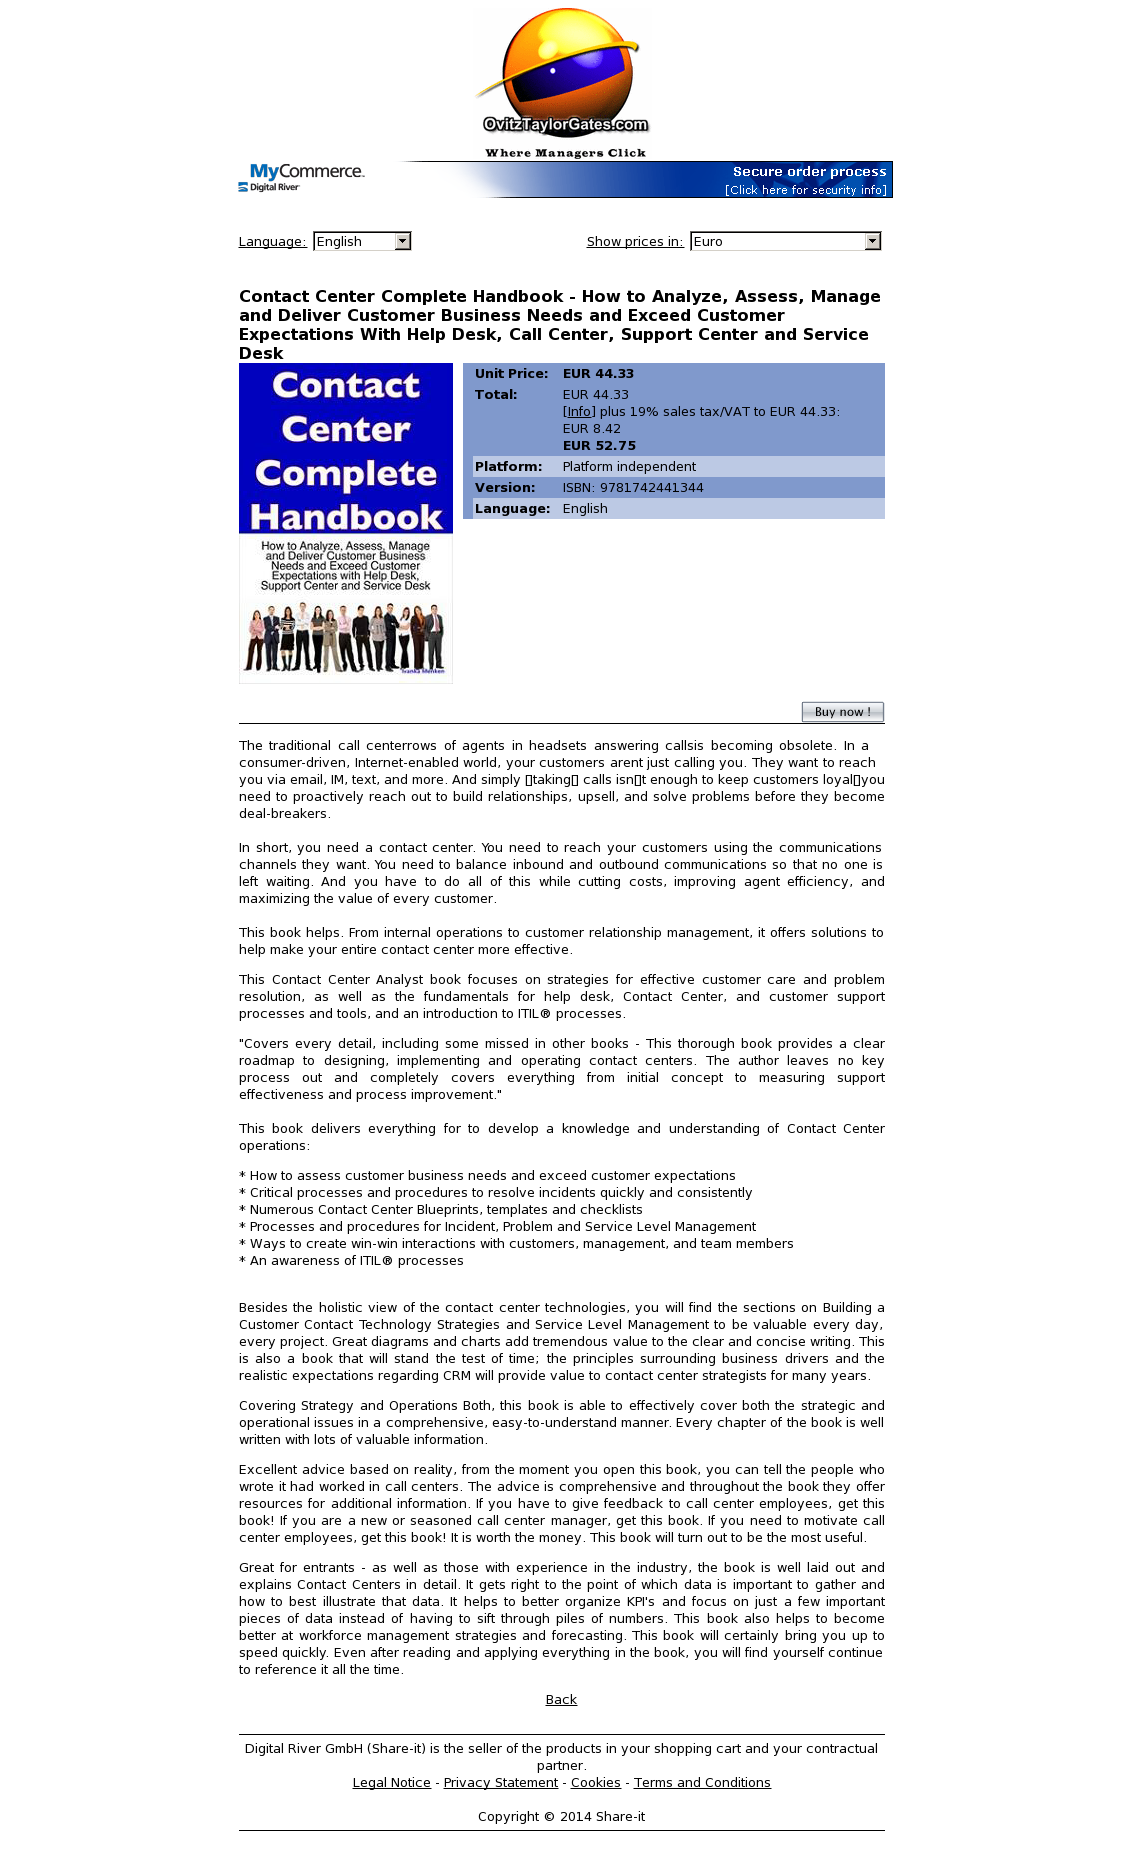 Contact Center Complete Handbook - How to Analyze, Assess, Manage and Deliver Customer Business Needs and Exceed Customer Expectations With Help Desk, Call Center, Support Center and Service Desk